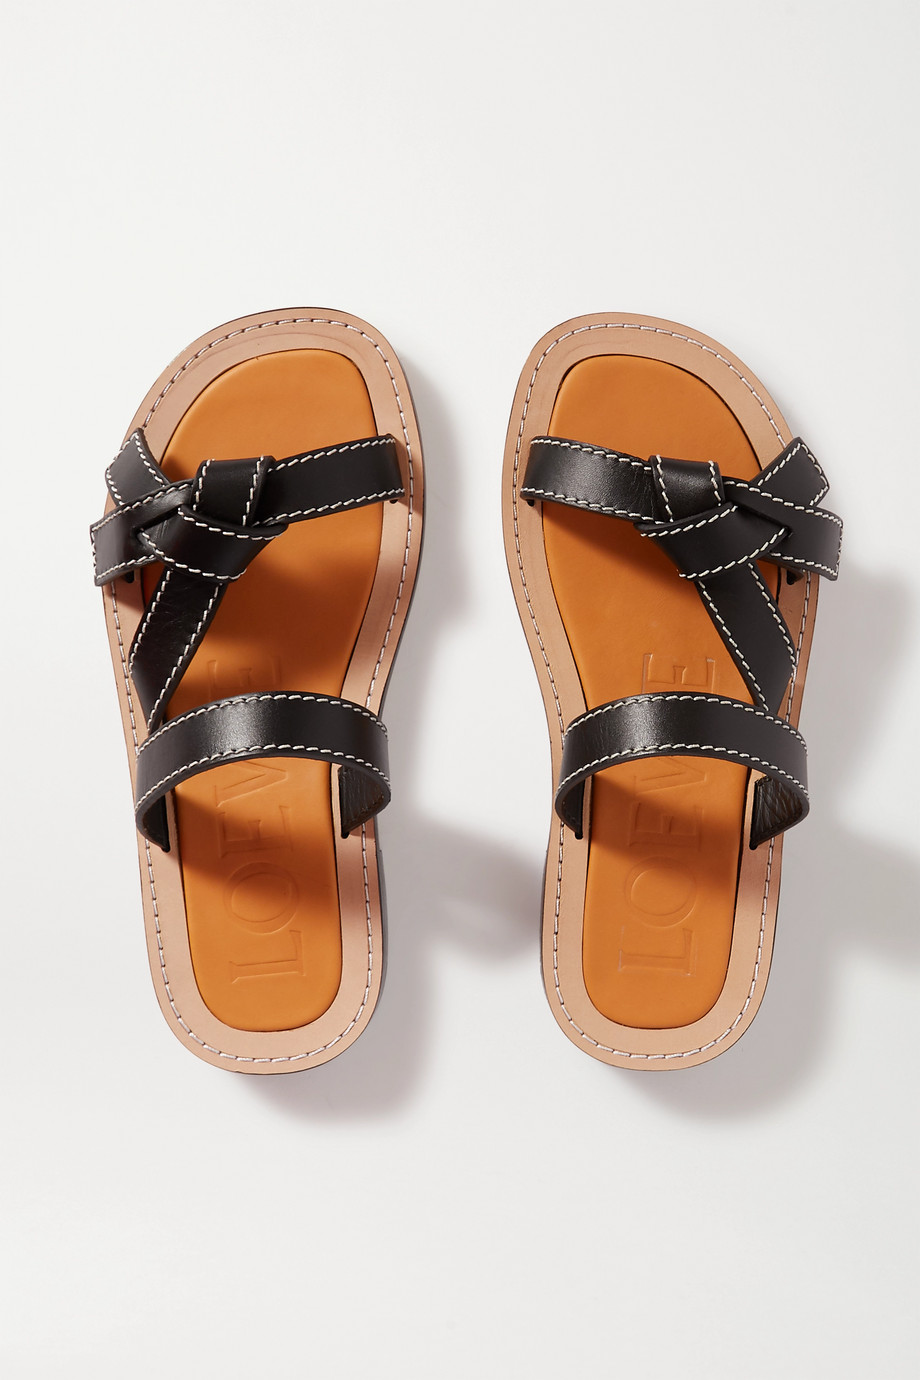 Loewe Gate leather slides